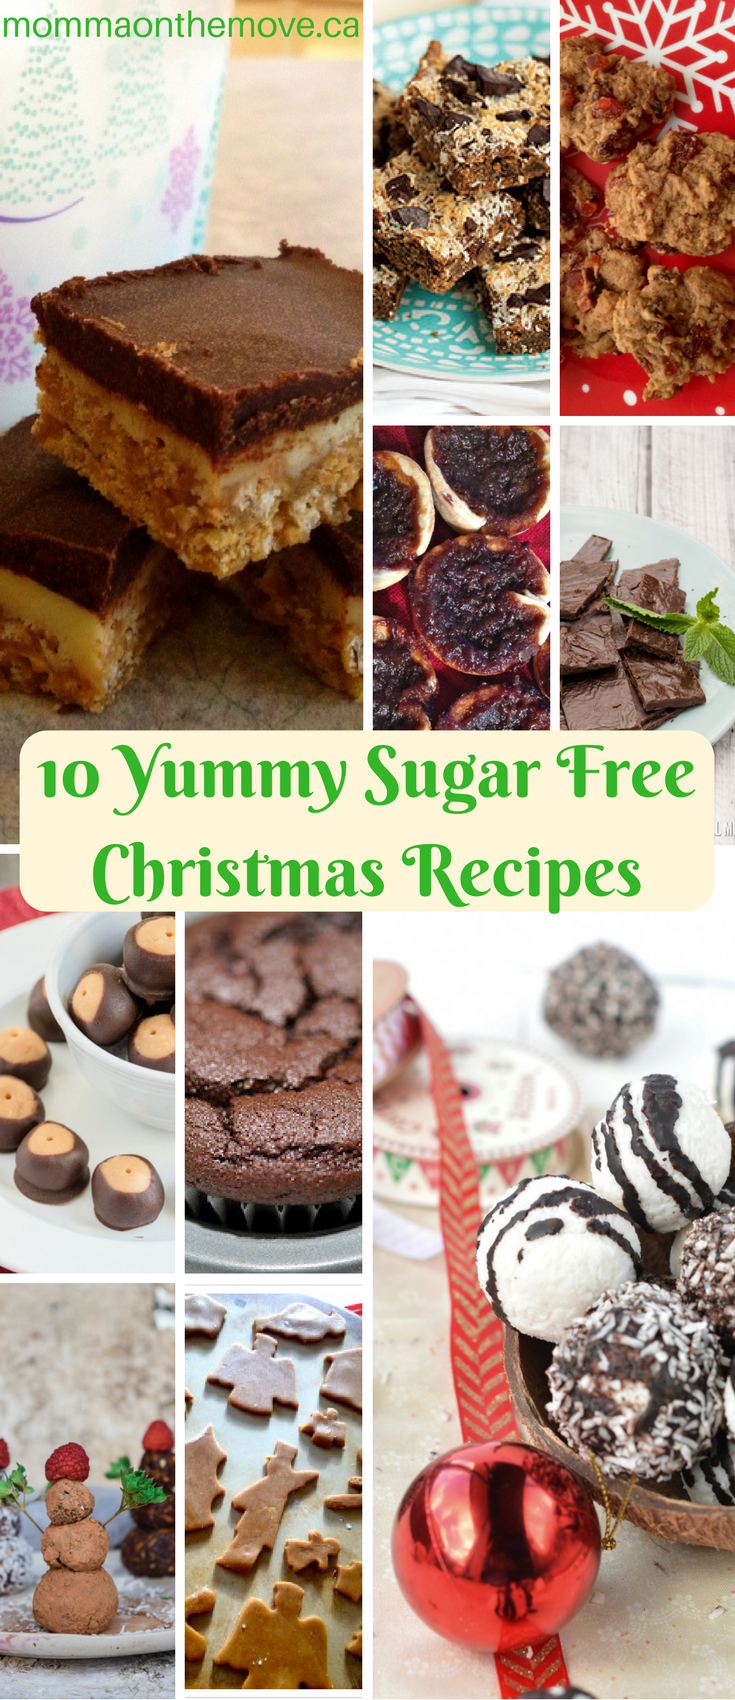 10-yummy-sugar-free-christmas-recipes-pinterest